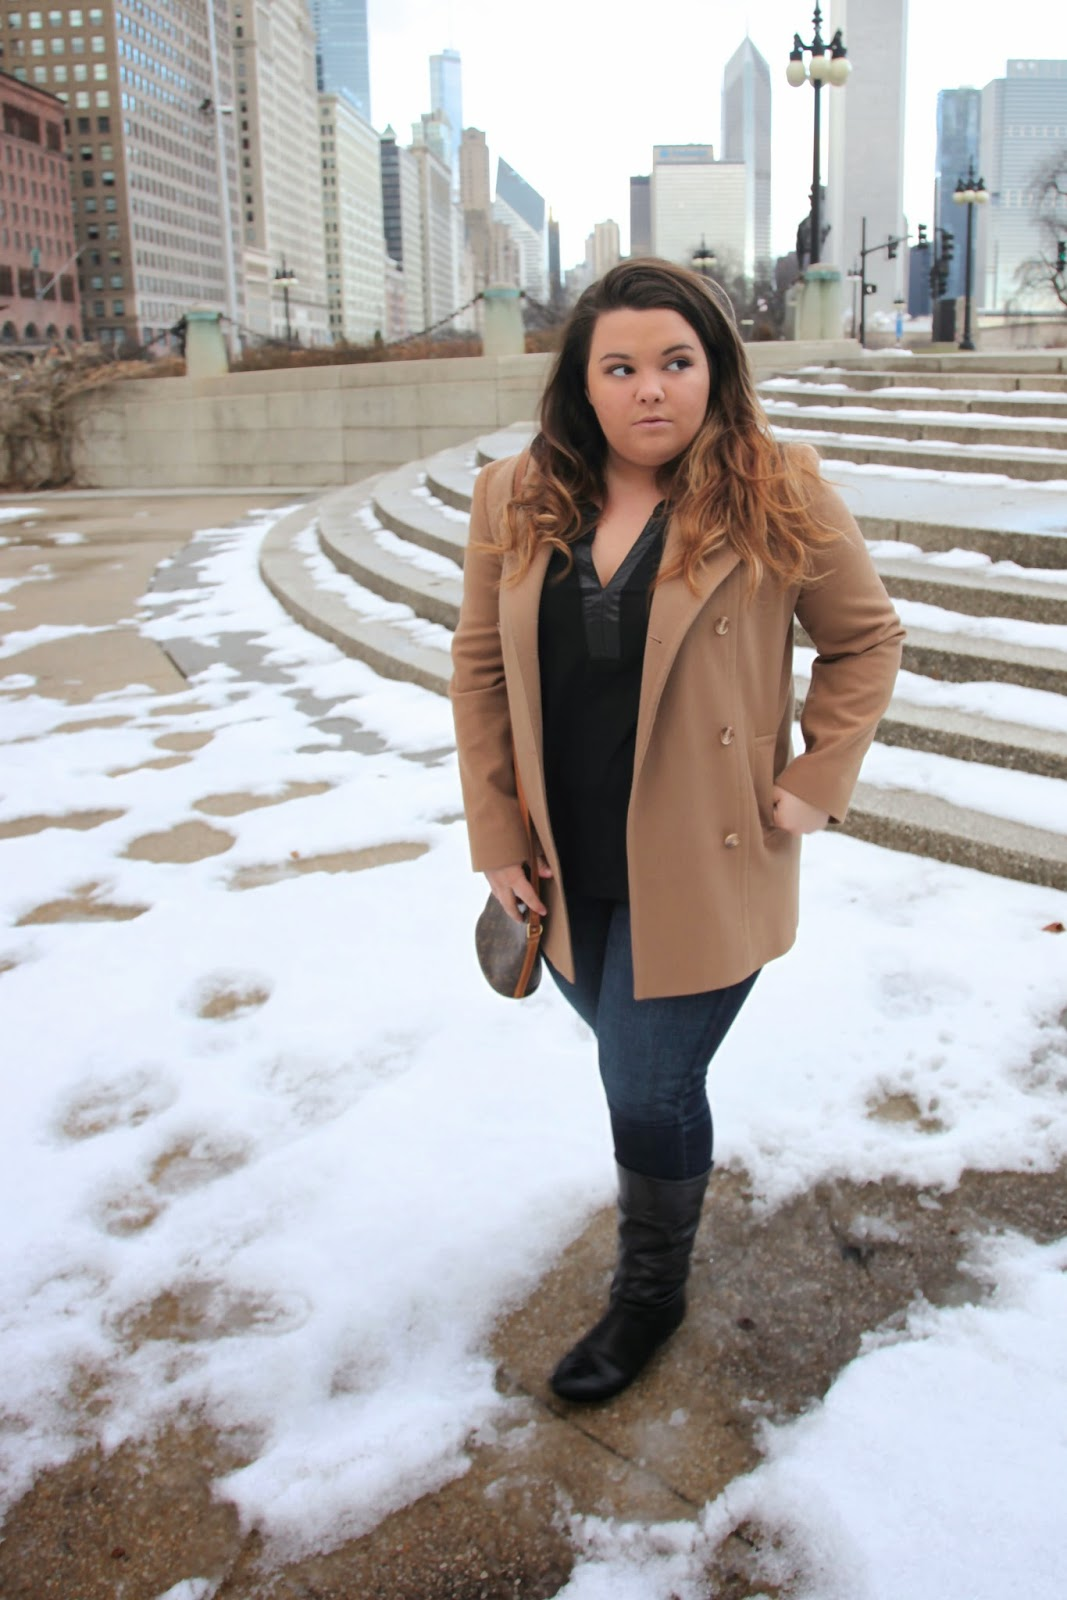 tan coat, kim kardashian coat, chicago, natalie craig, natalie in the city, bbw, thick girls, plus size fashion blogger, ootd, chicago blogger network, black, leather, denim, black boots, Pendleton coats, chicago skyline, curvy women, plus size acceptance movement, fatshion